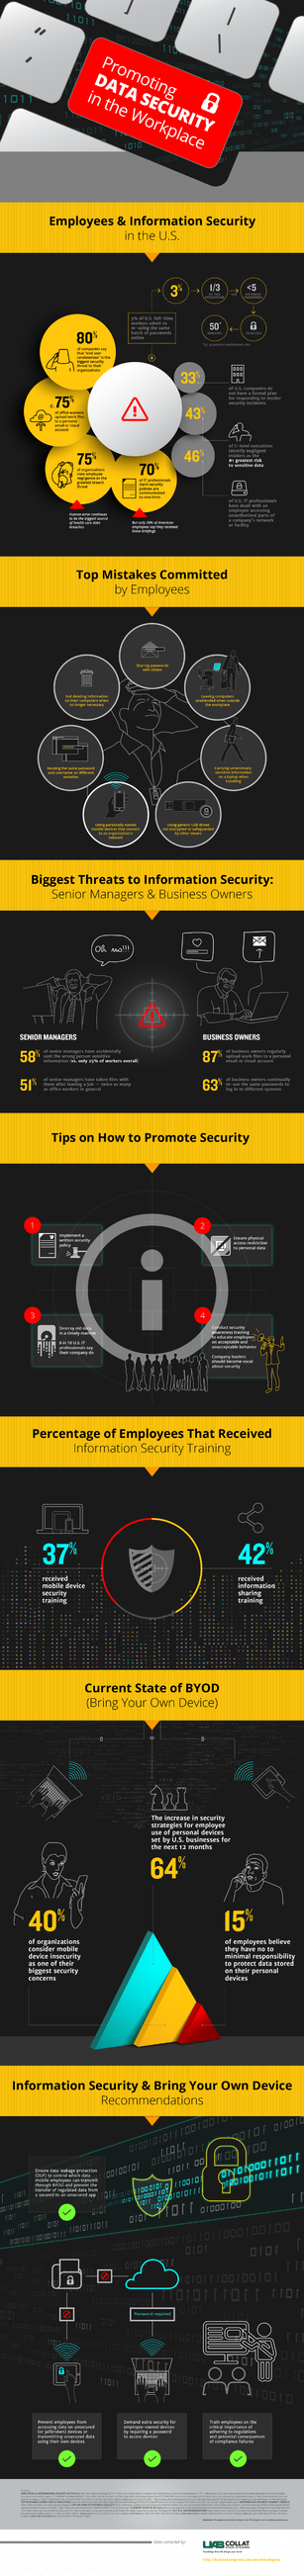 Infographic: Data Security in the Workplace by leilapearse